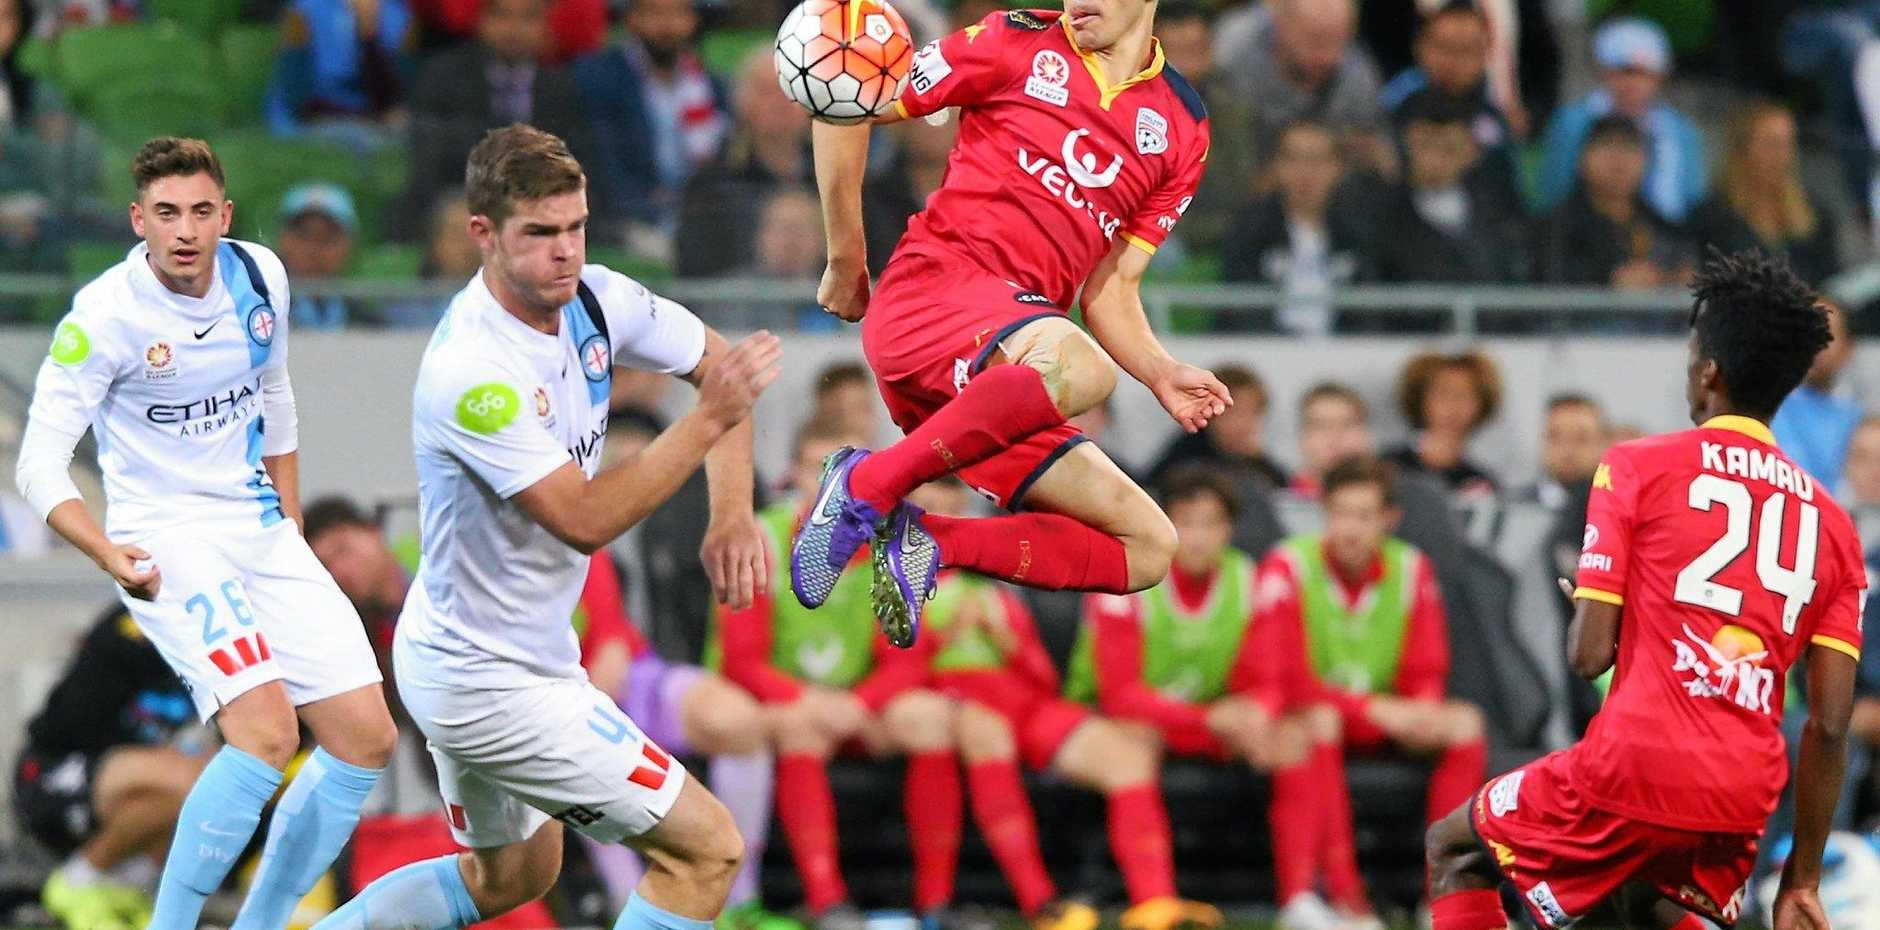 FLYING HIGH: Isaias gets above Melbourne City's Jacob Melling in the 2-0 win in round 27.